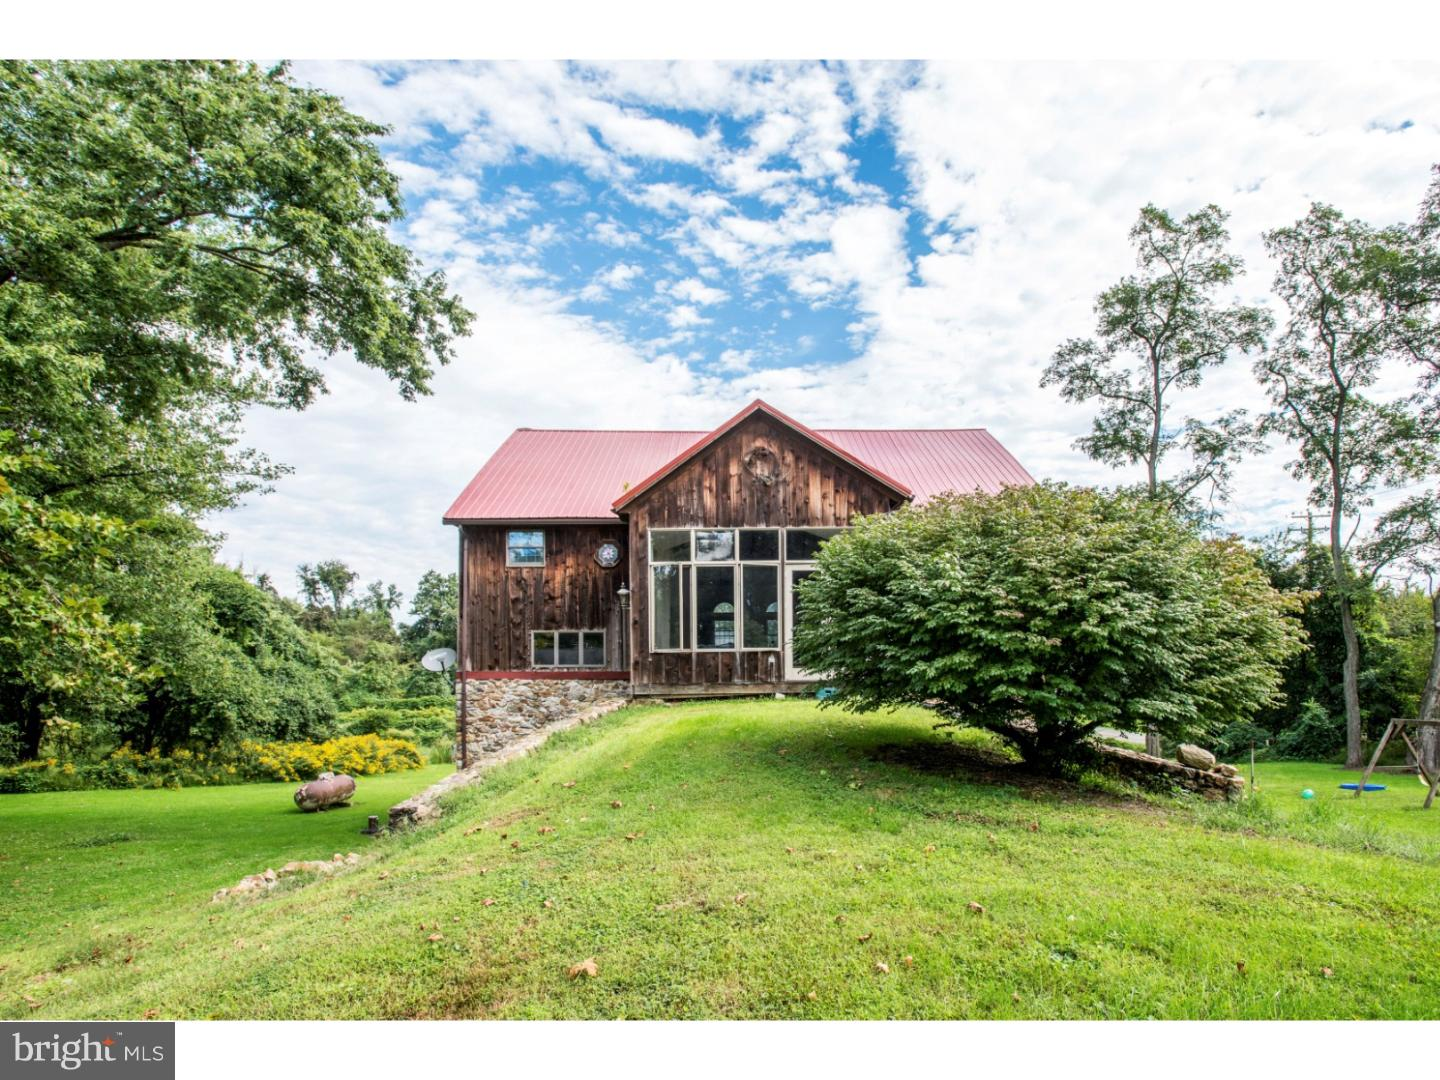 960 STATE ROAD, WEST GROVE, PA 19390